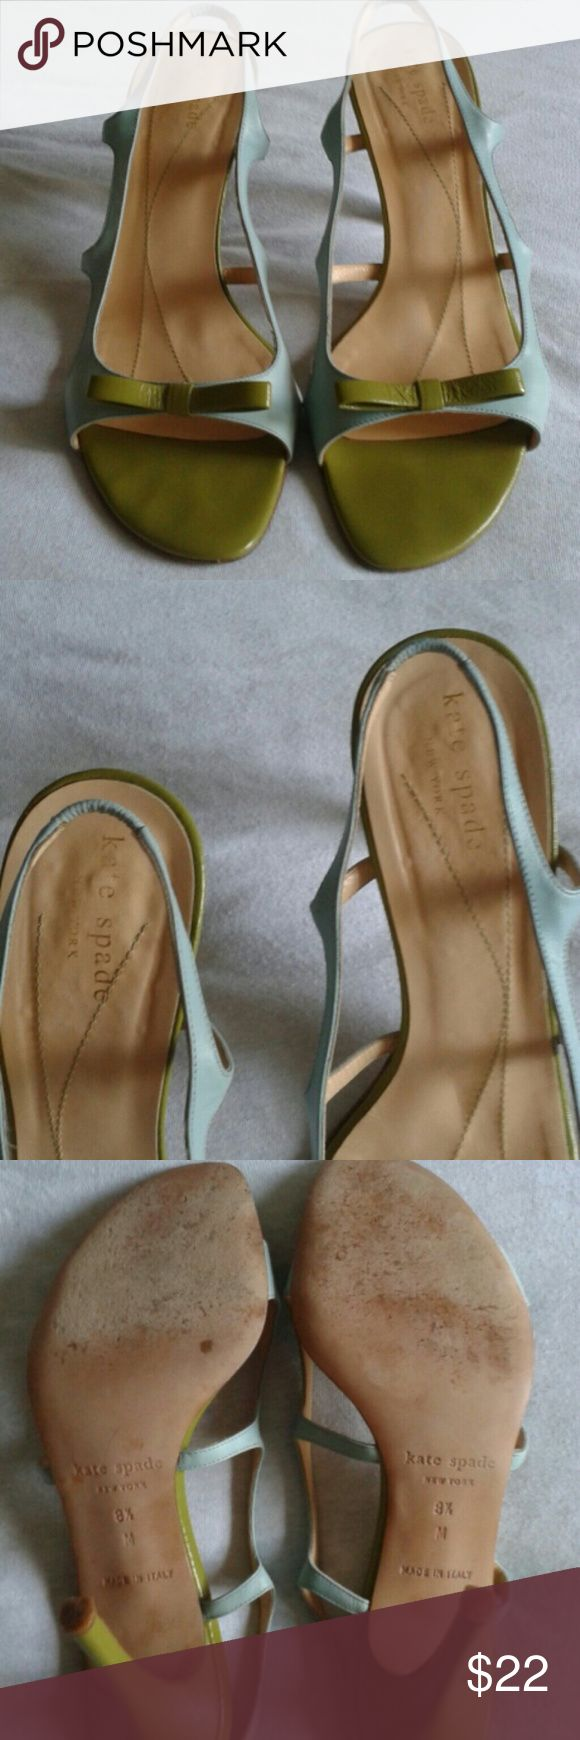 "Kate Spate scrappy sandals size 8.5 Adorable sandals with Kate Spade""s signature bow. The sandals are in very nice condition.  They have a few small marks in the back by the heel as shown in the picture.  Although the sandals show some wear they still make a great statement and look great on your feet. The heel is about 4inches. Upper and sole is all leather. kate spade Shoes Sandals"